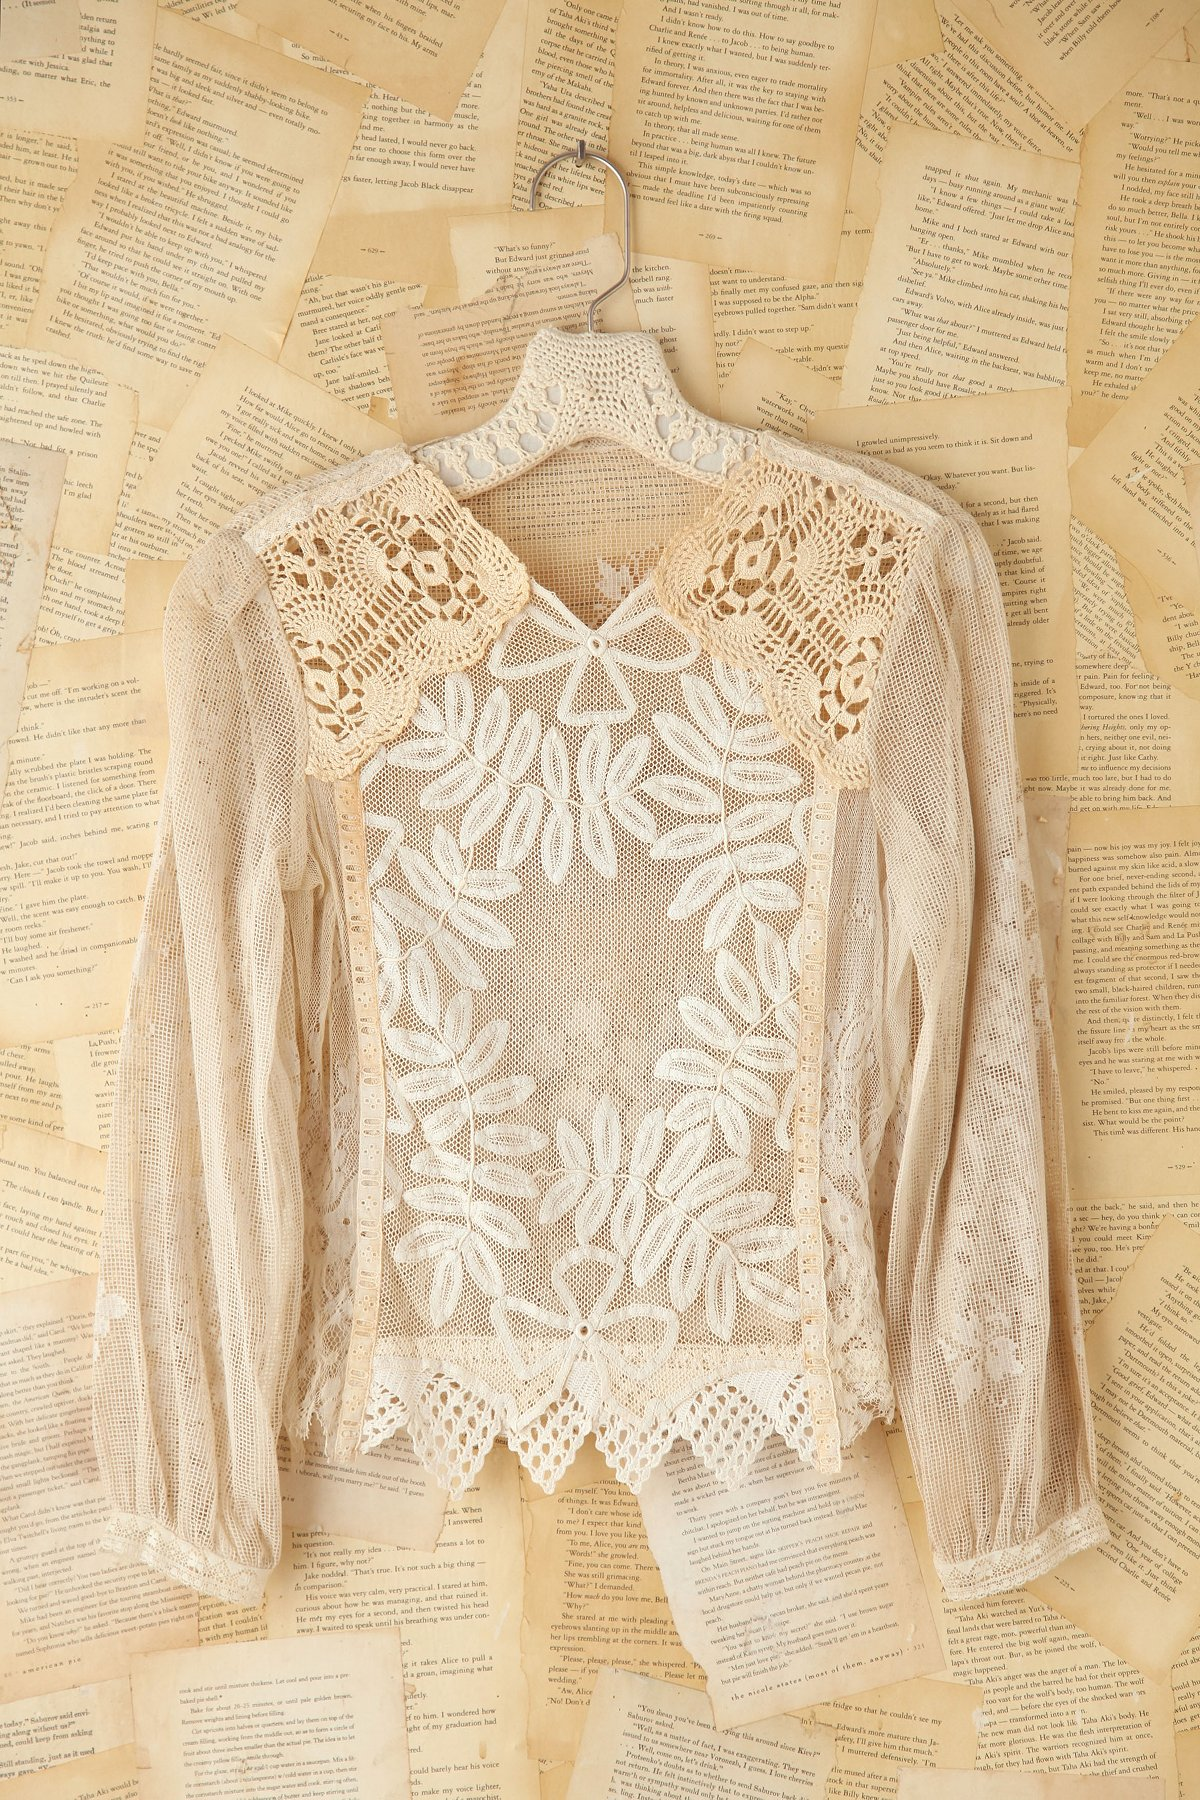 Vintage Netted Long Sleeve Top with Crochet